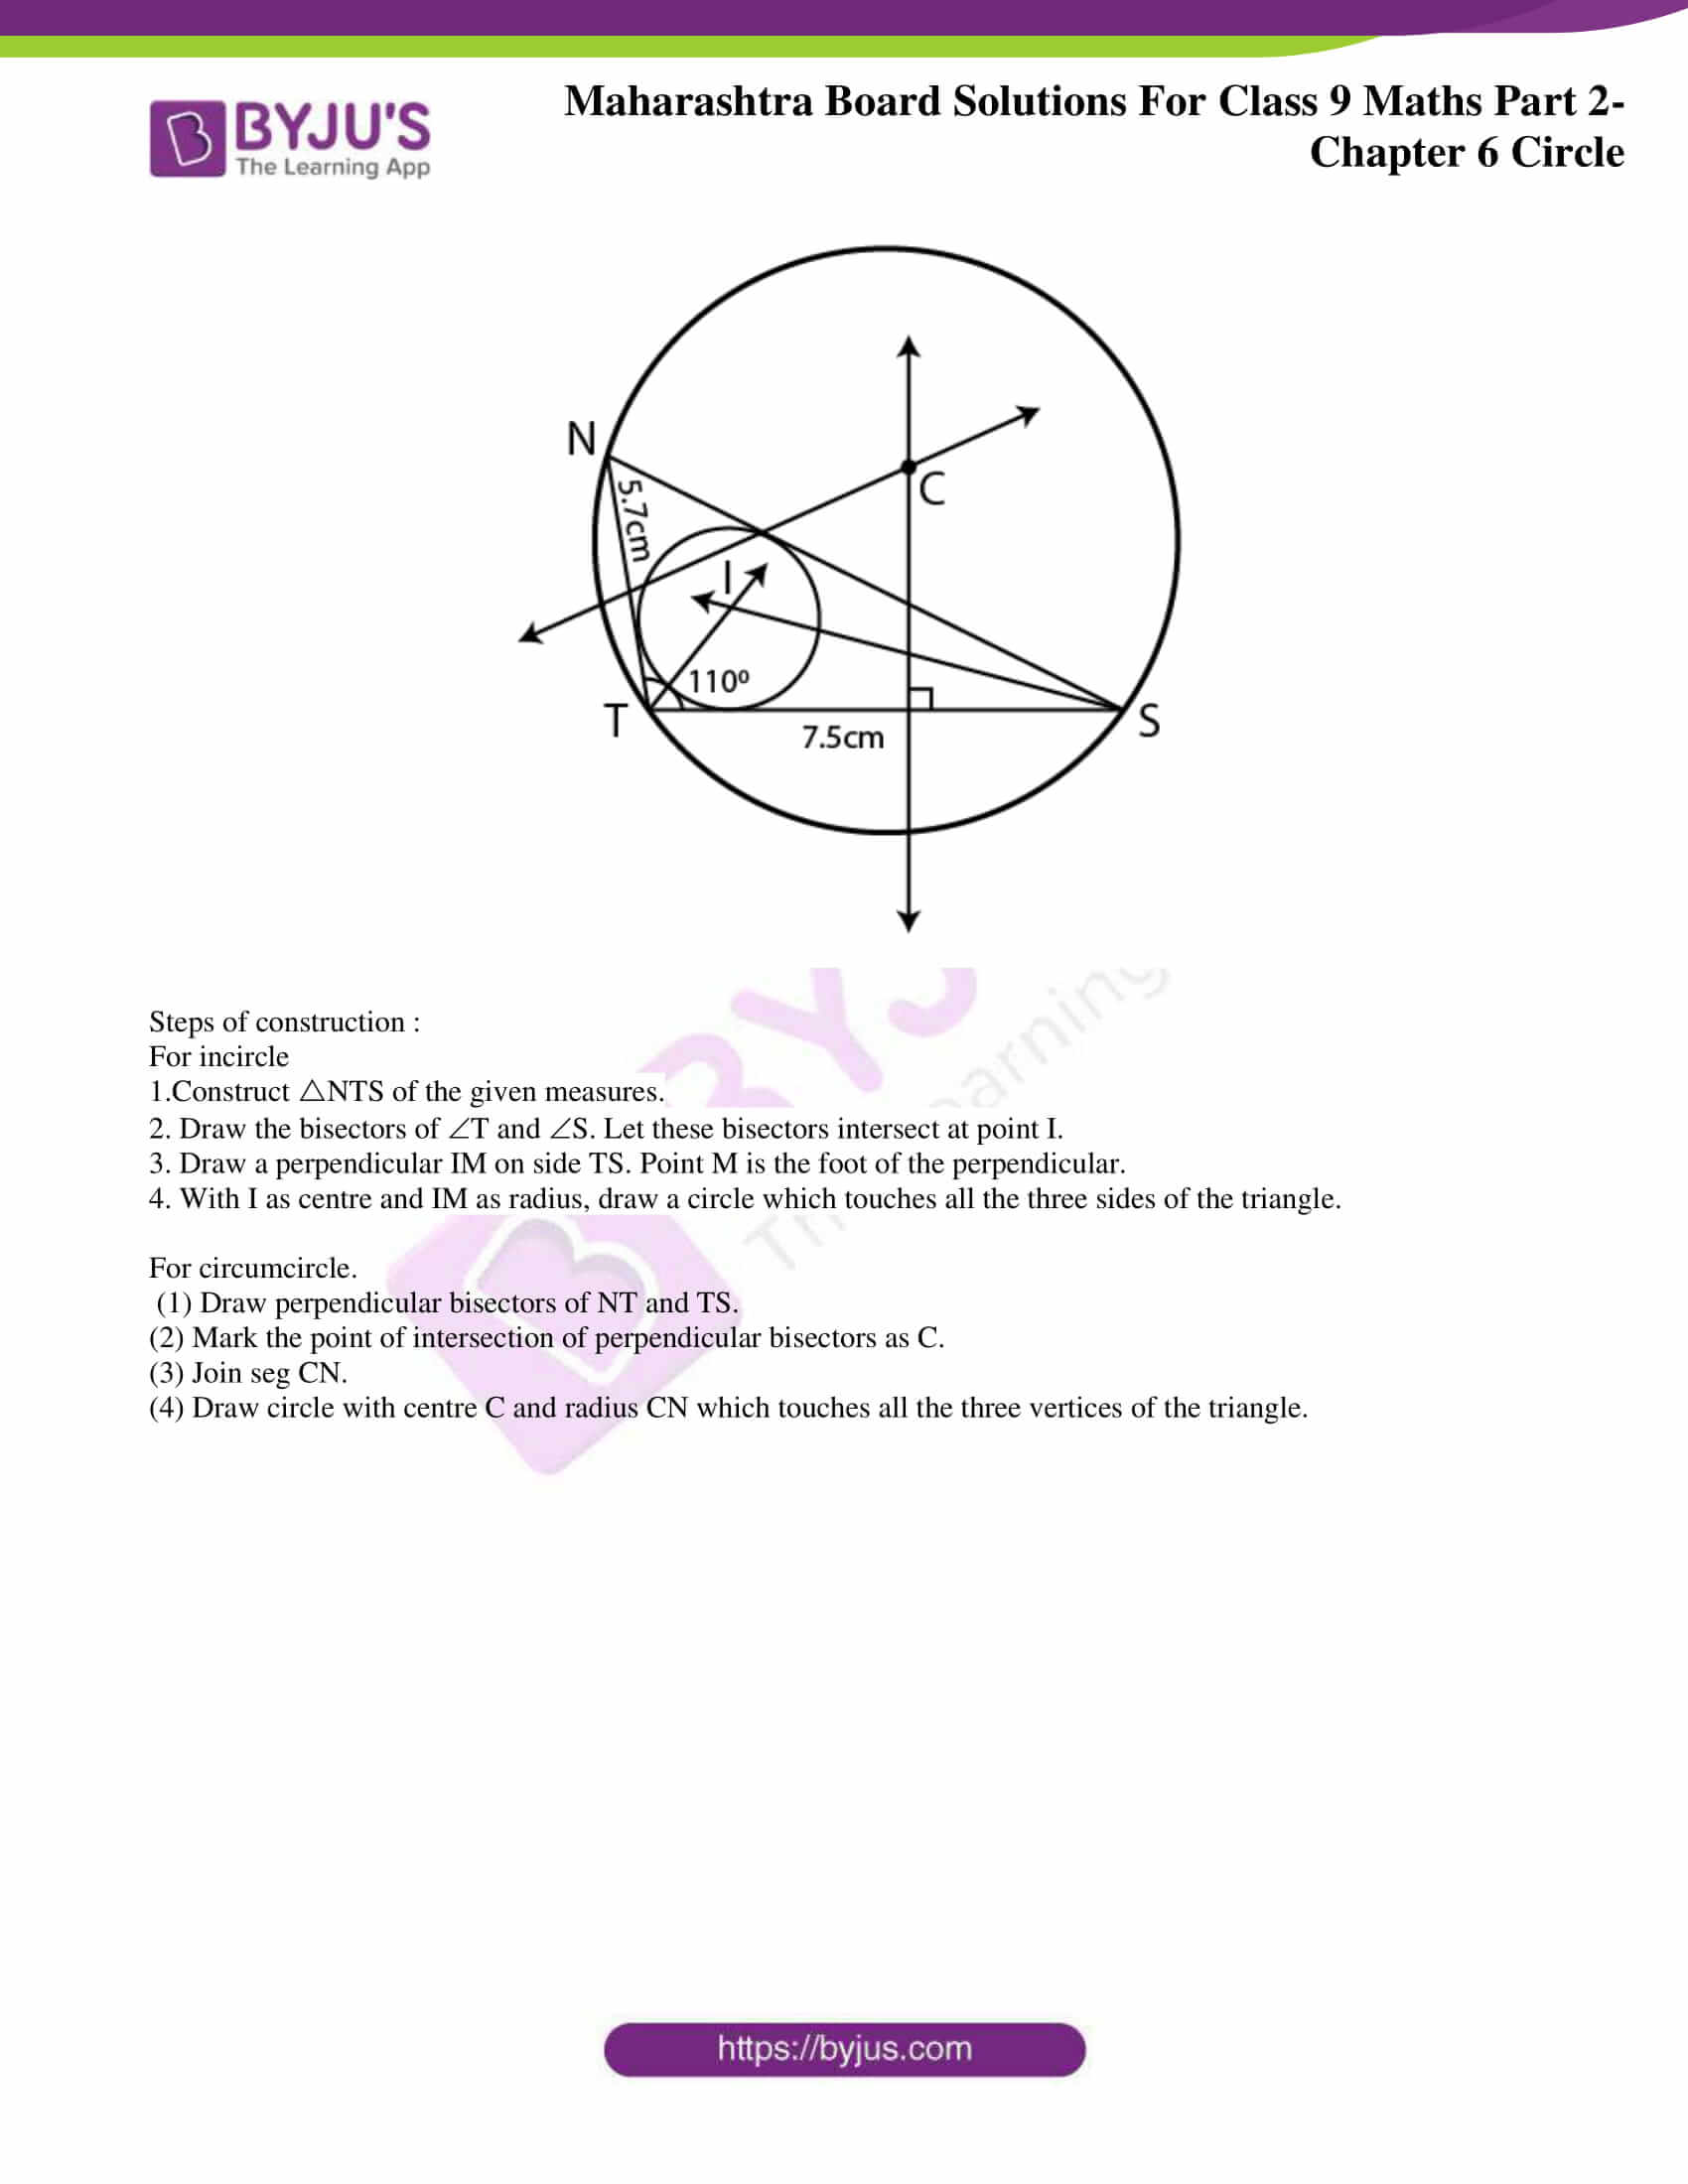 msbshse solutions for class 9 maths part 2 chapter 6 25